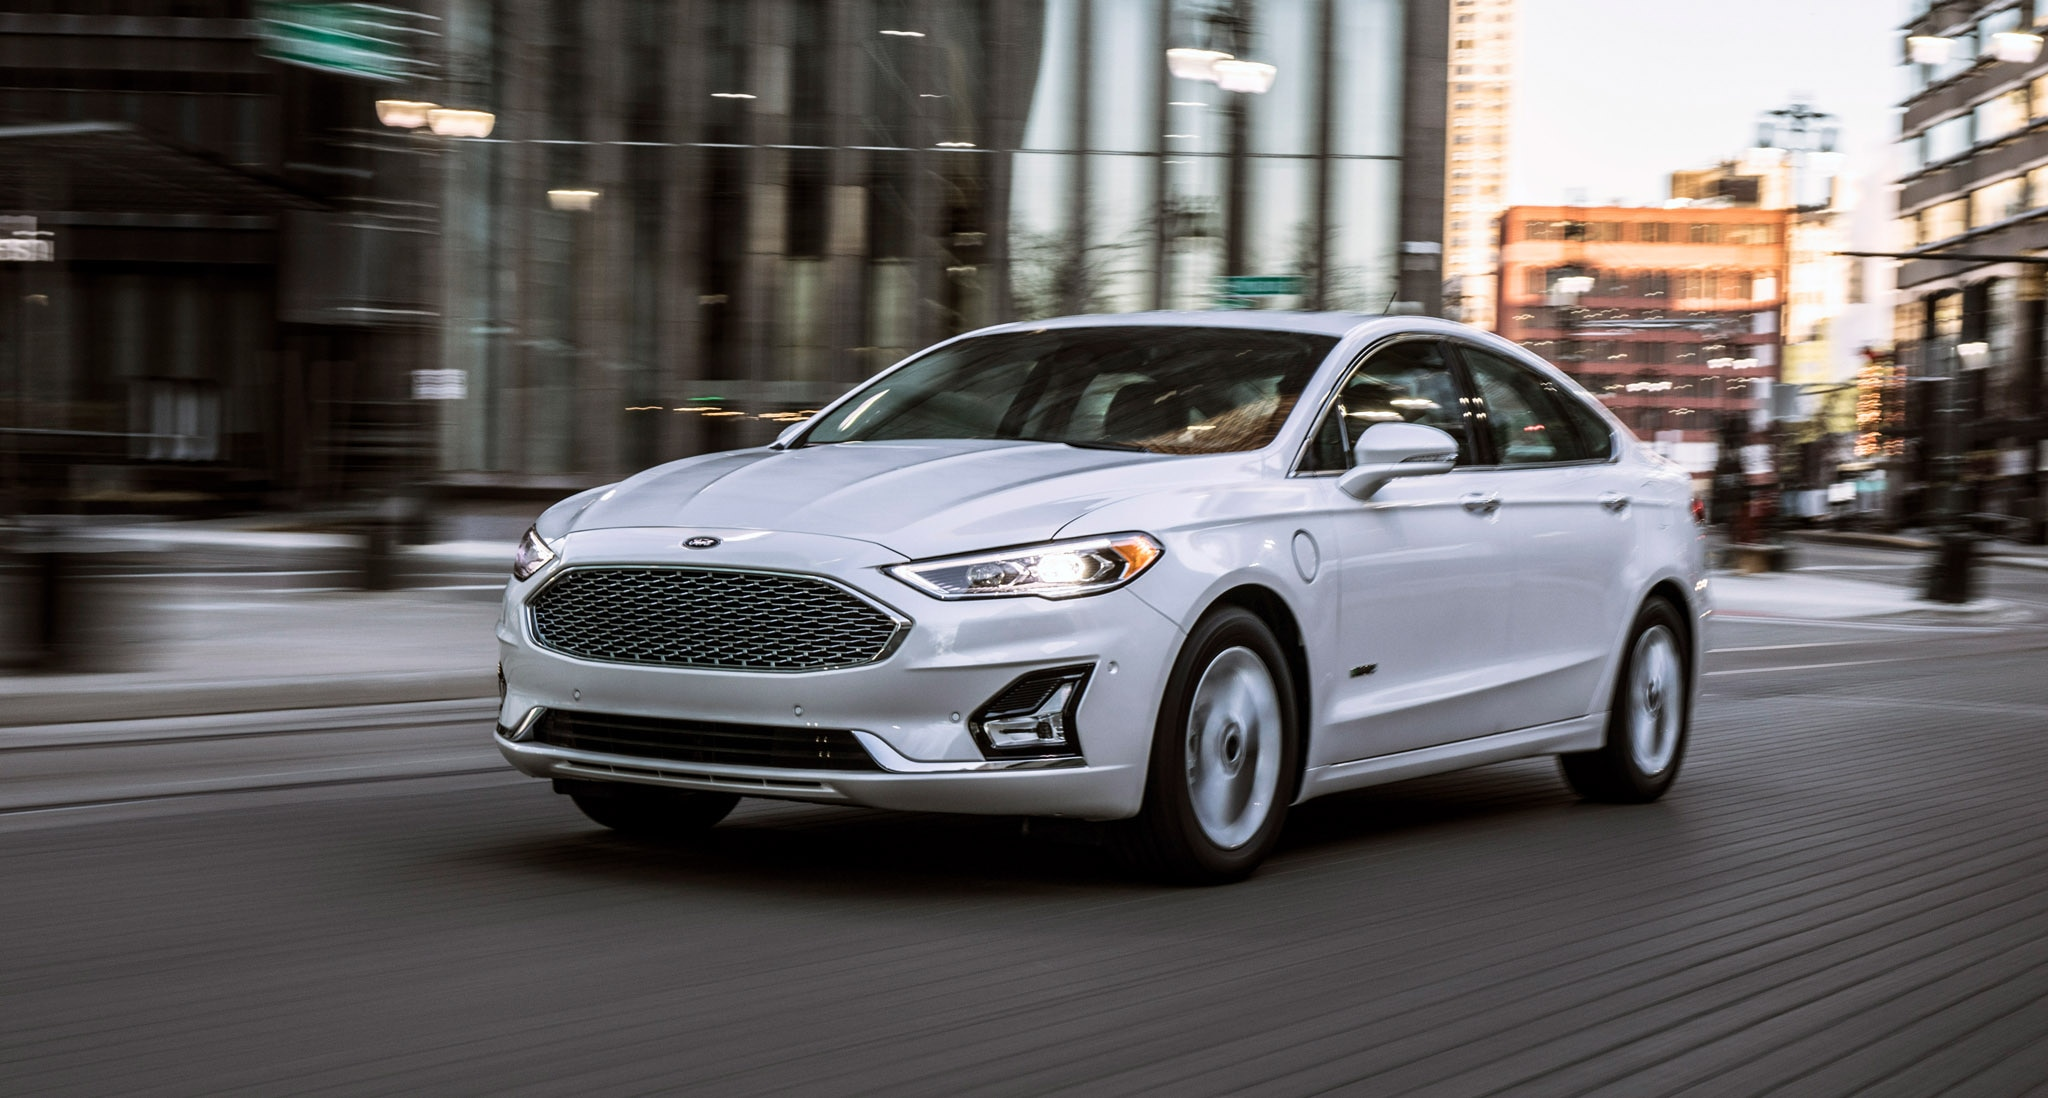 19FordFusion_05_HR